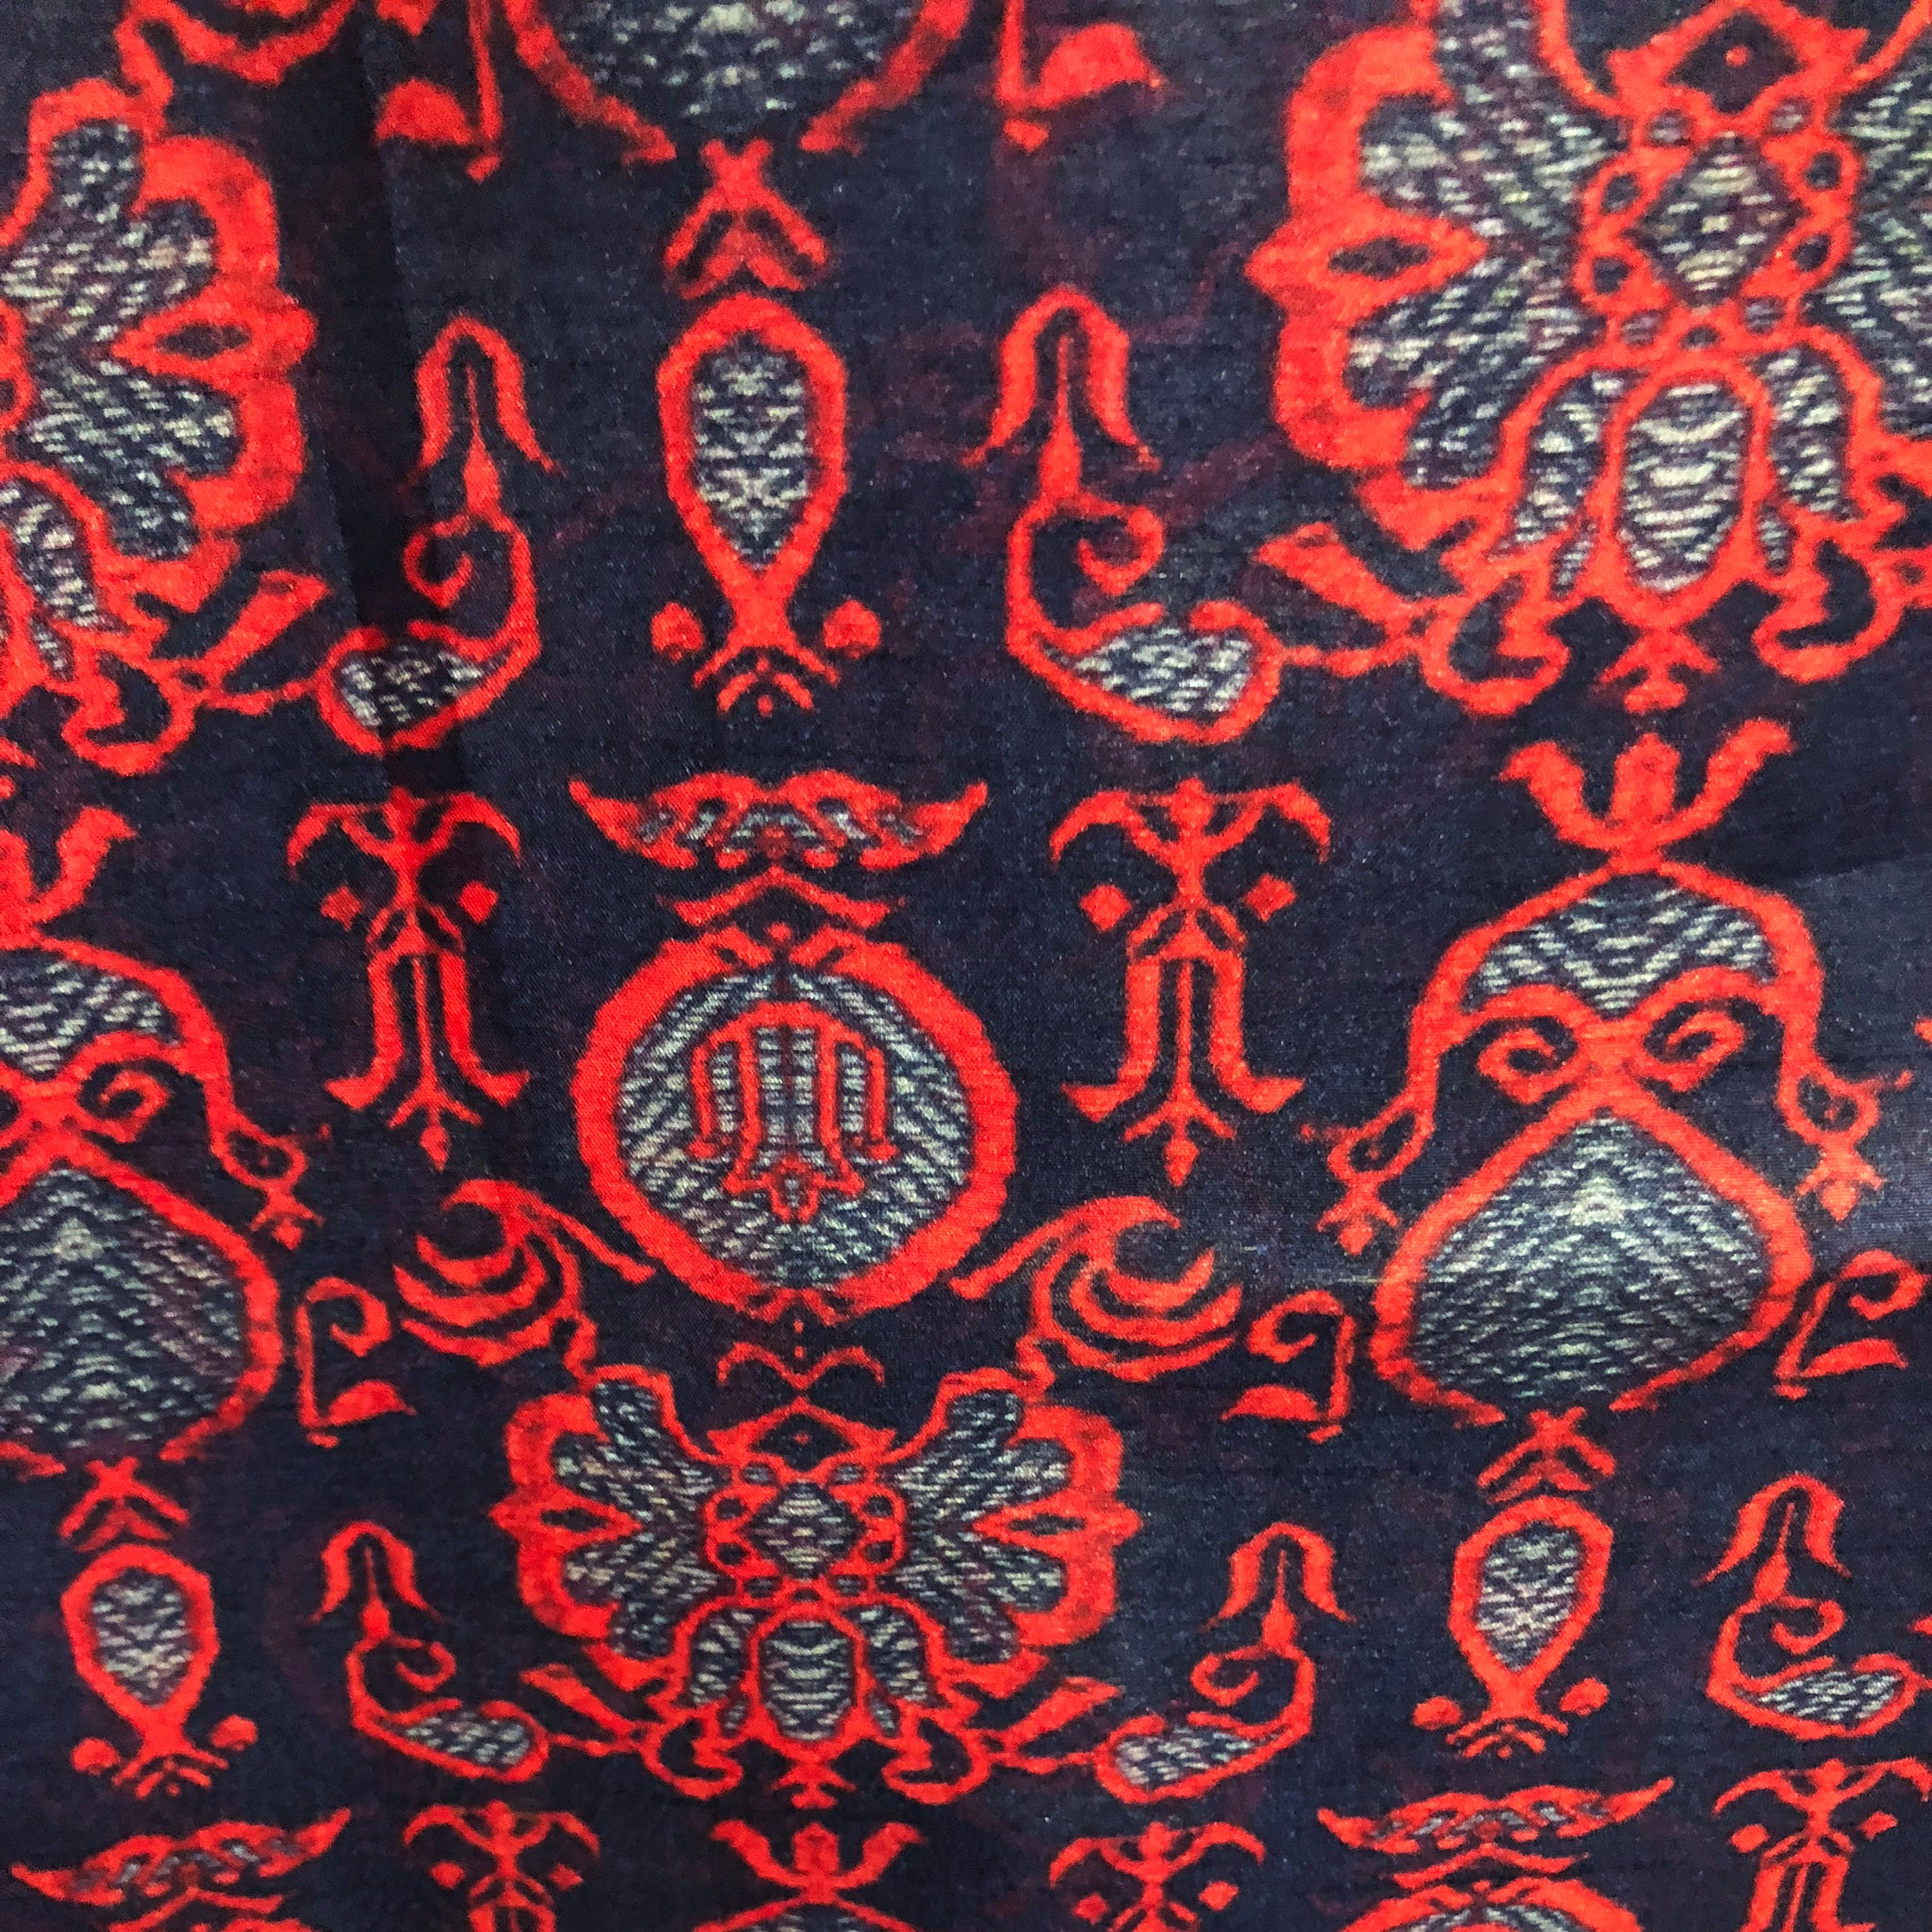 red-black-printed-tussar-silk-fabric-online